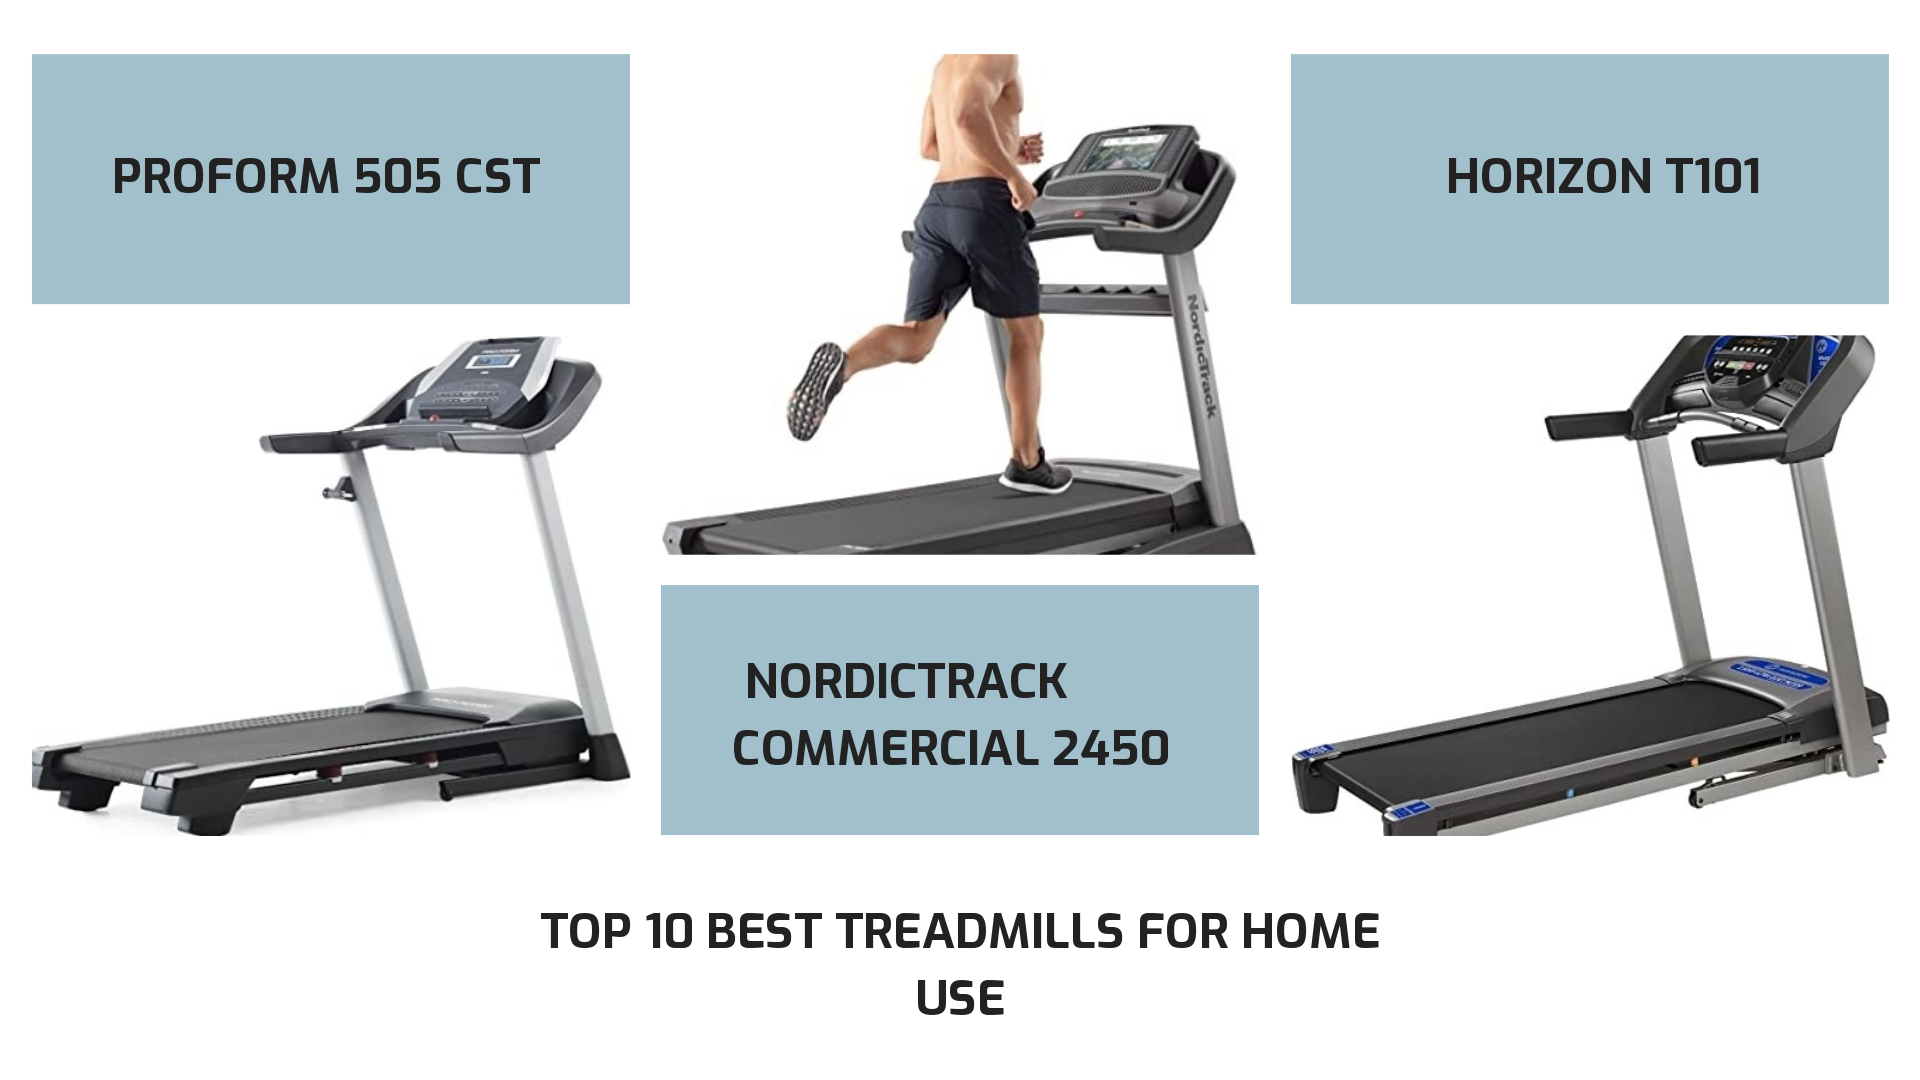 Top 10 best treadmills for home use